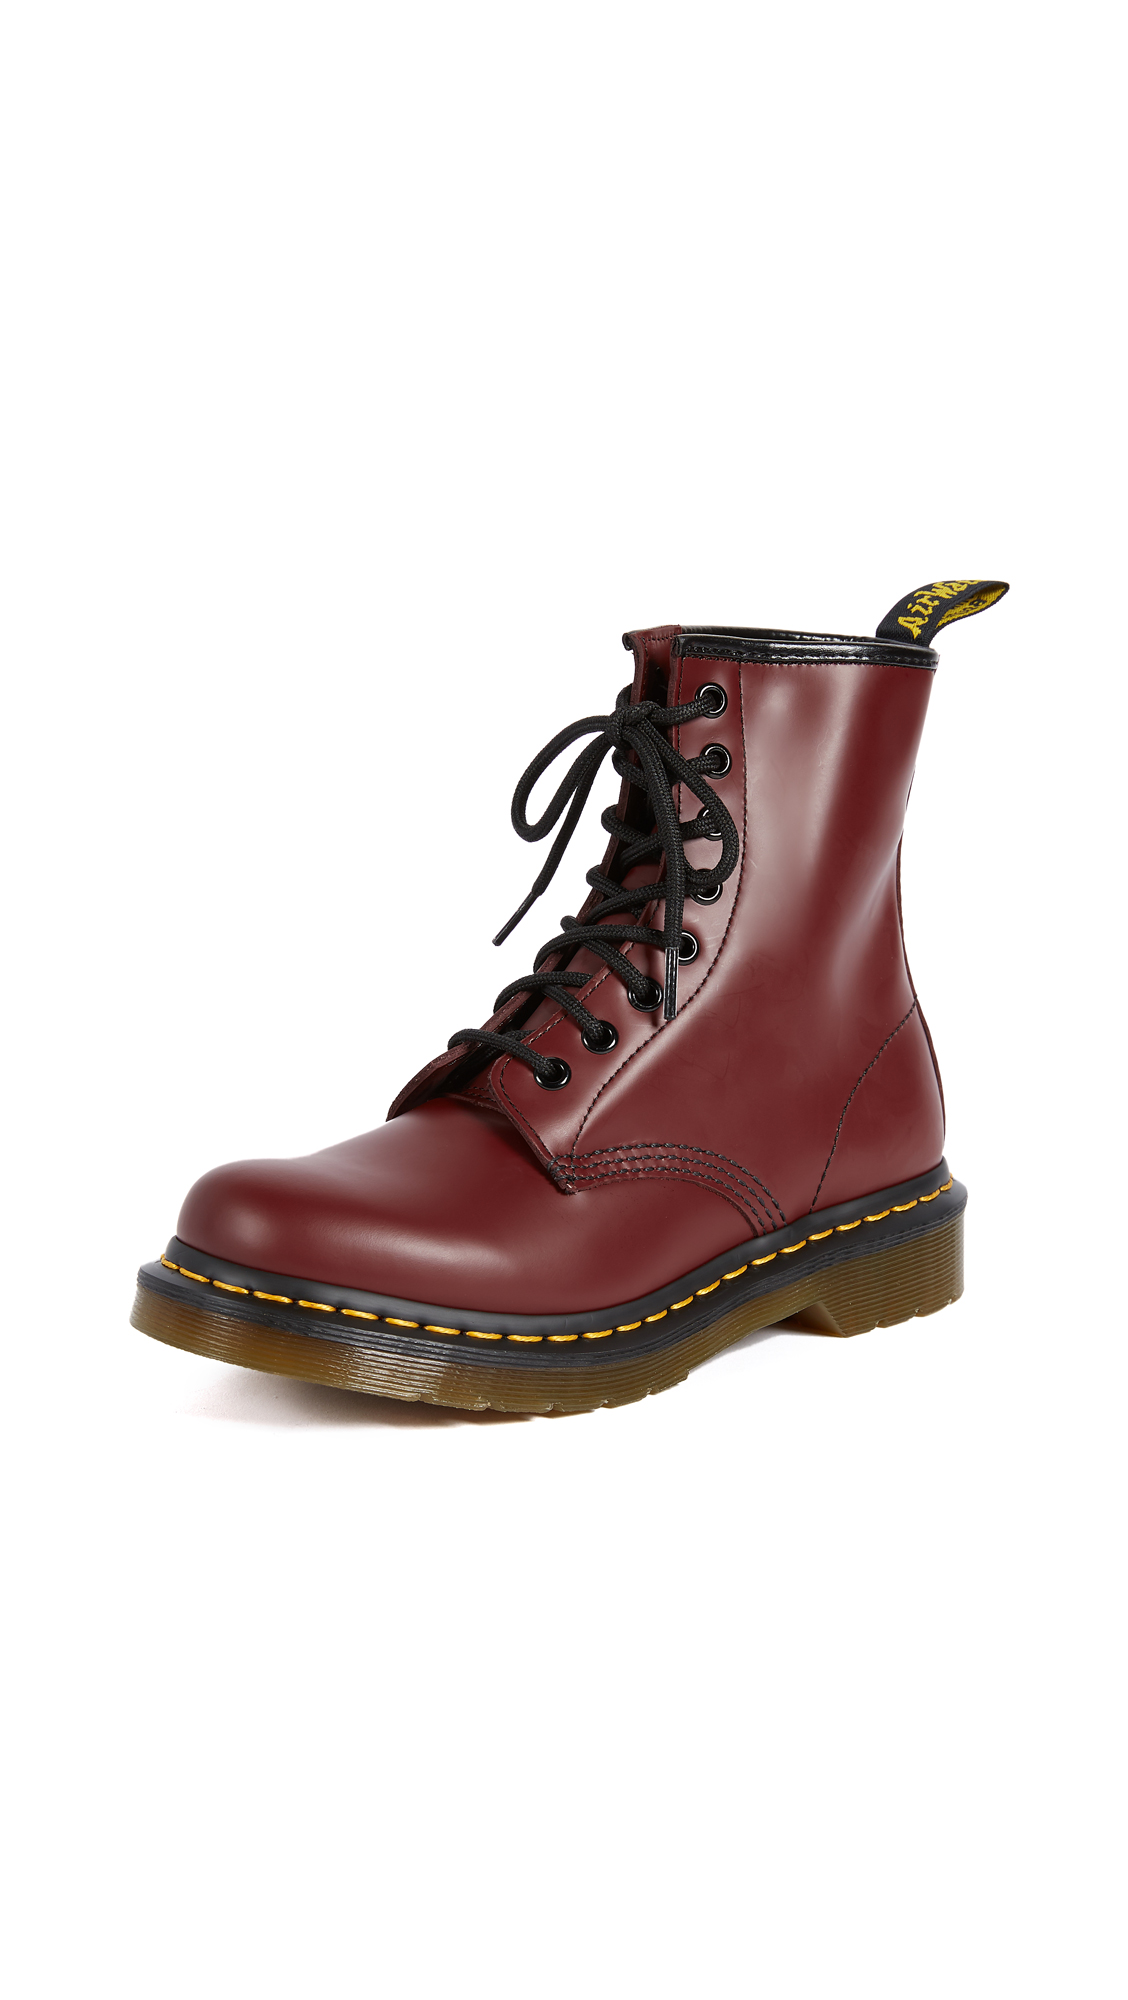 Dr. Martens 1460 8 Eye Boots - Cherry Red